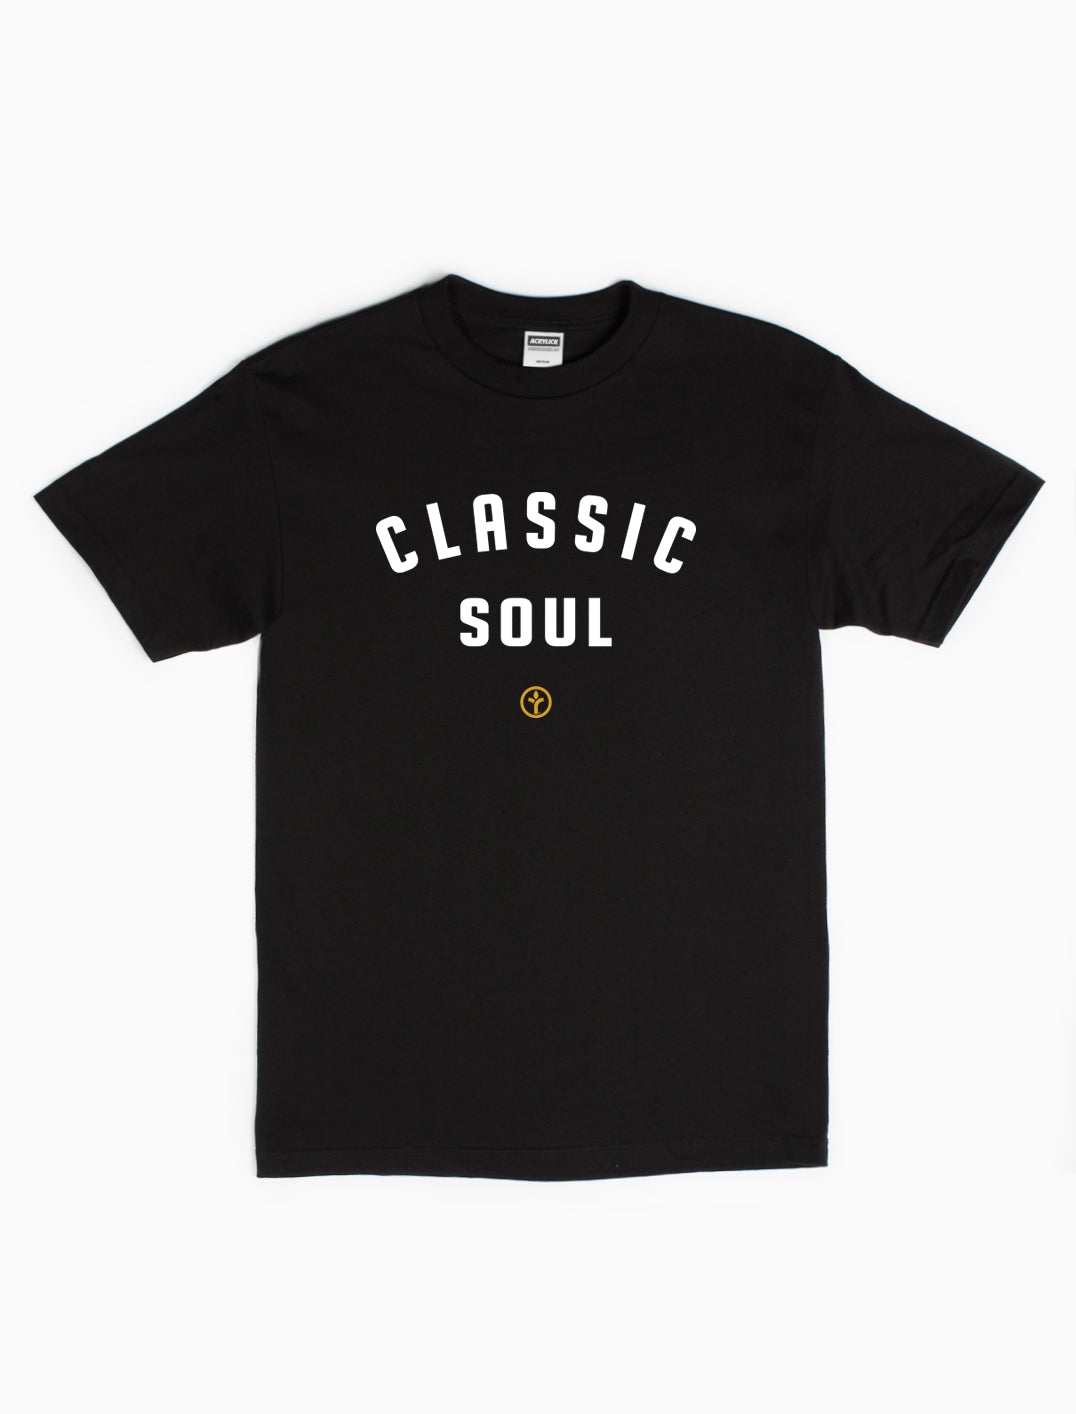 Acrylick Company - 2019 - Classic Soul Tee Short Sleeve Graphic T-Shirt (3880996110447)